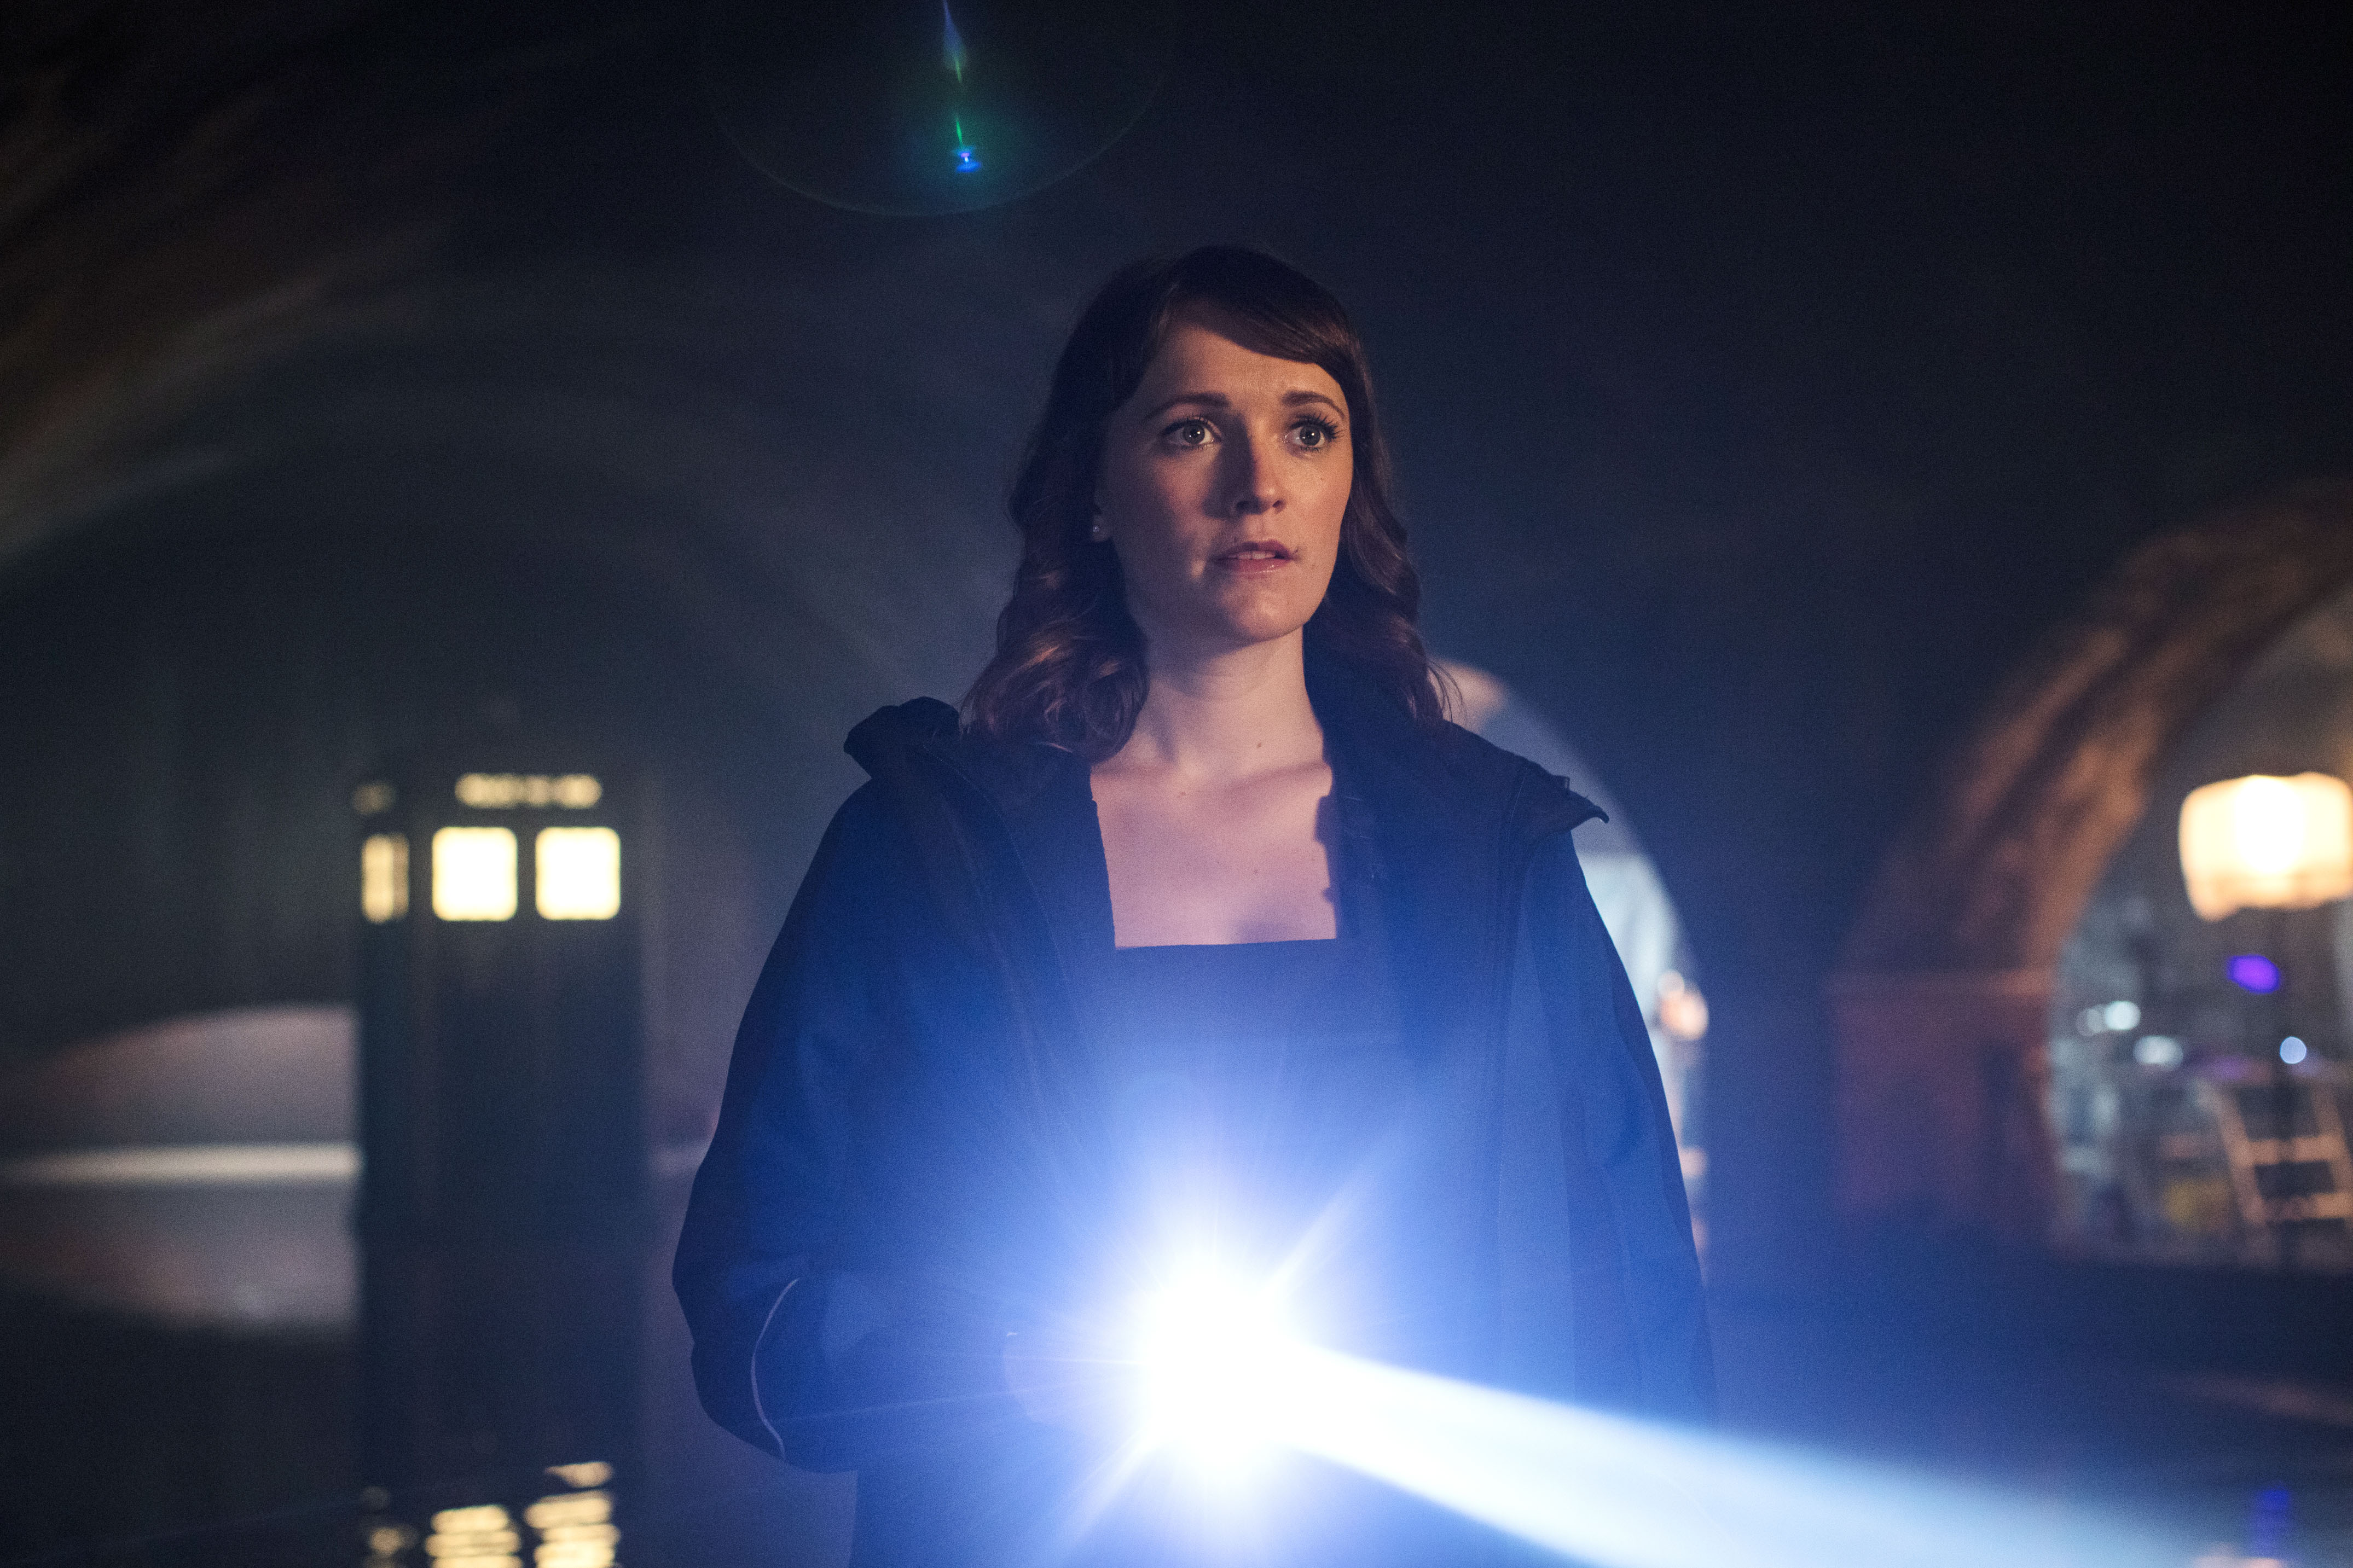 DOCTOR WHO: 'Resolution' - Who is Charlotte Ritchie